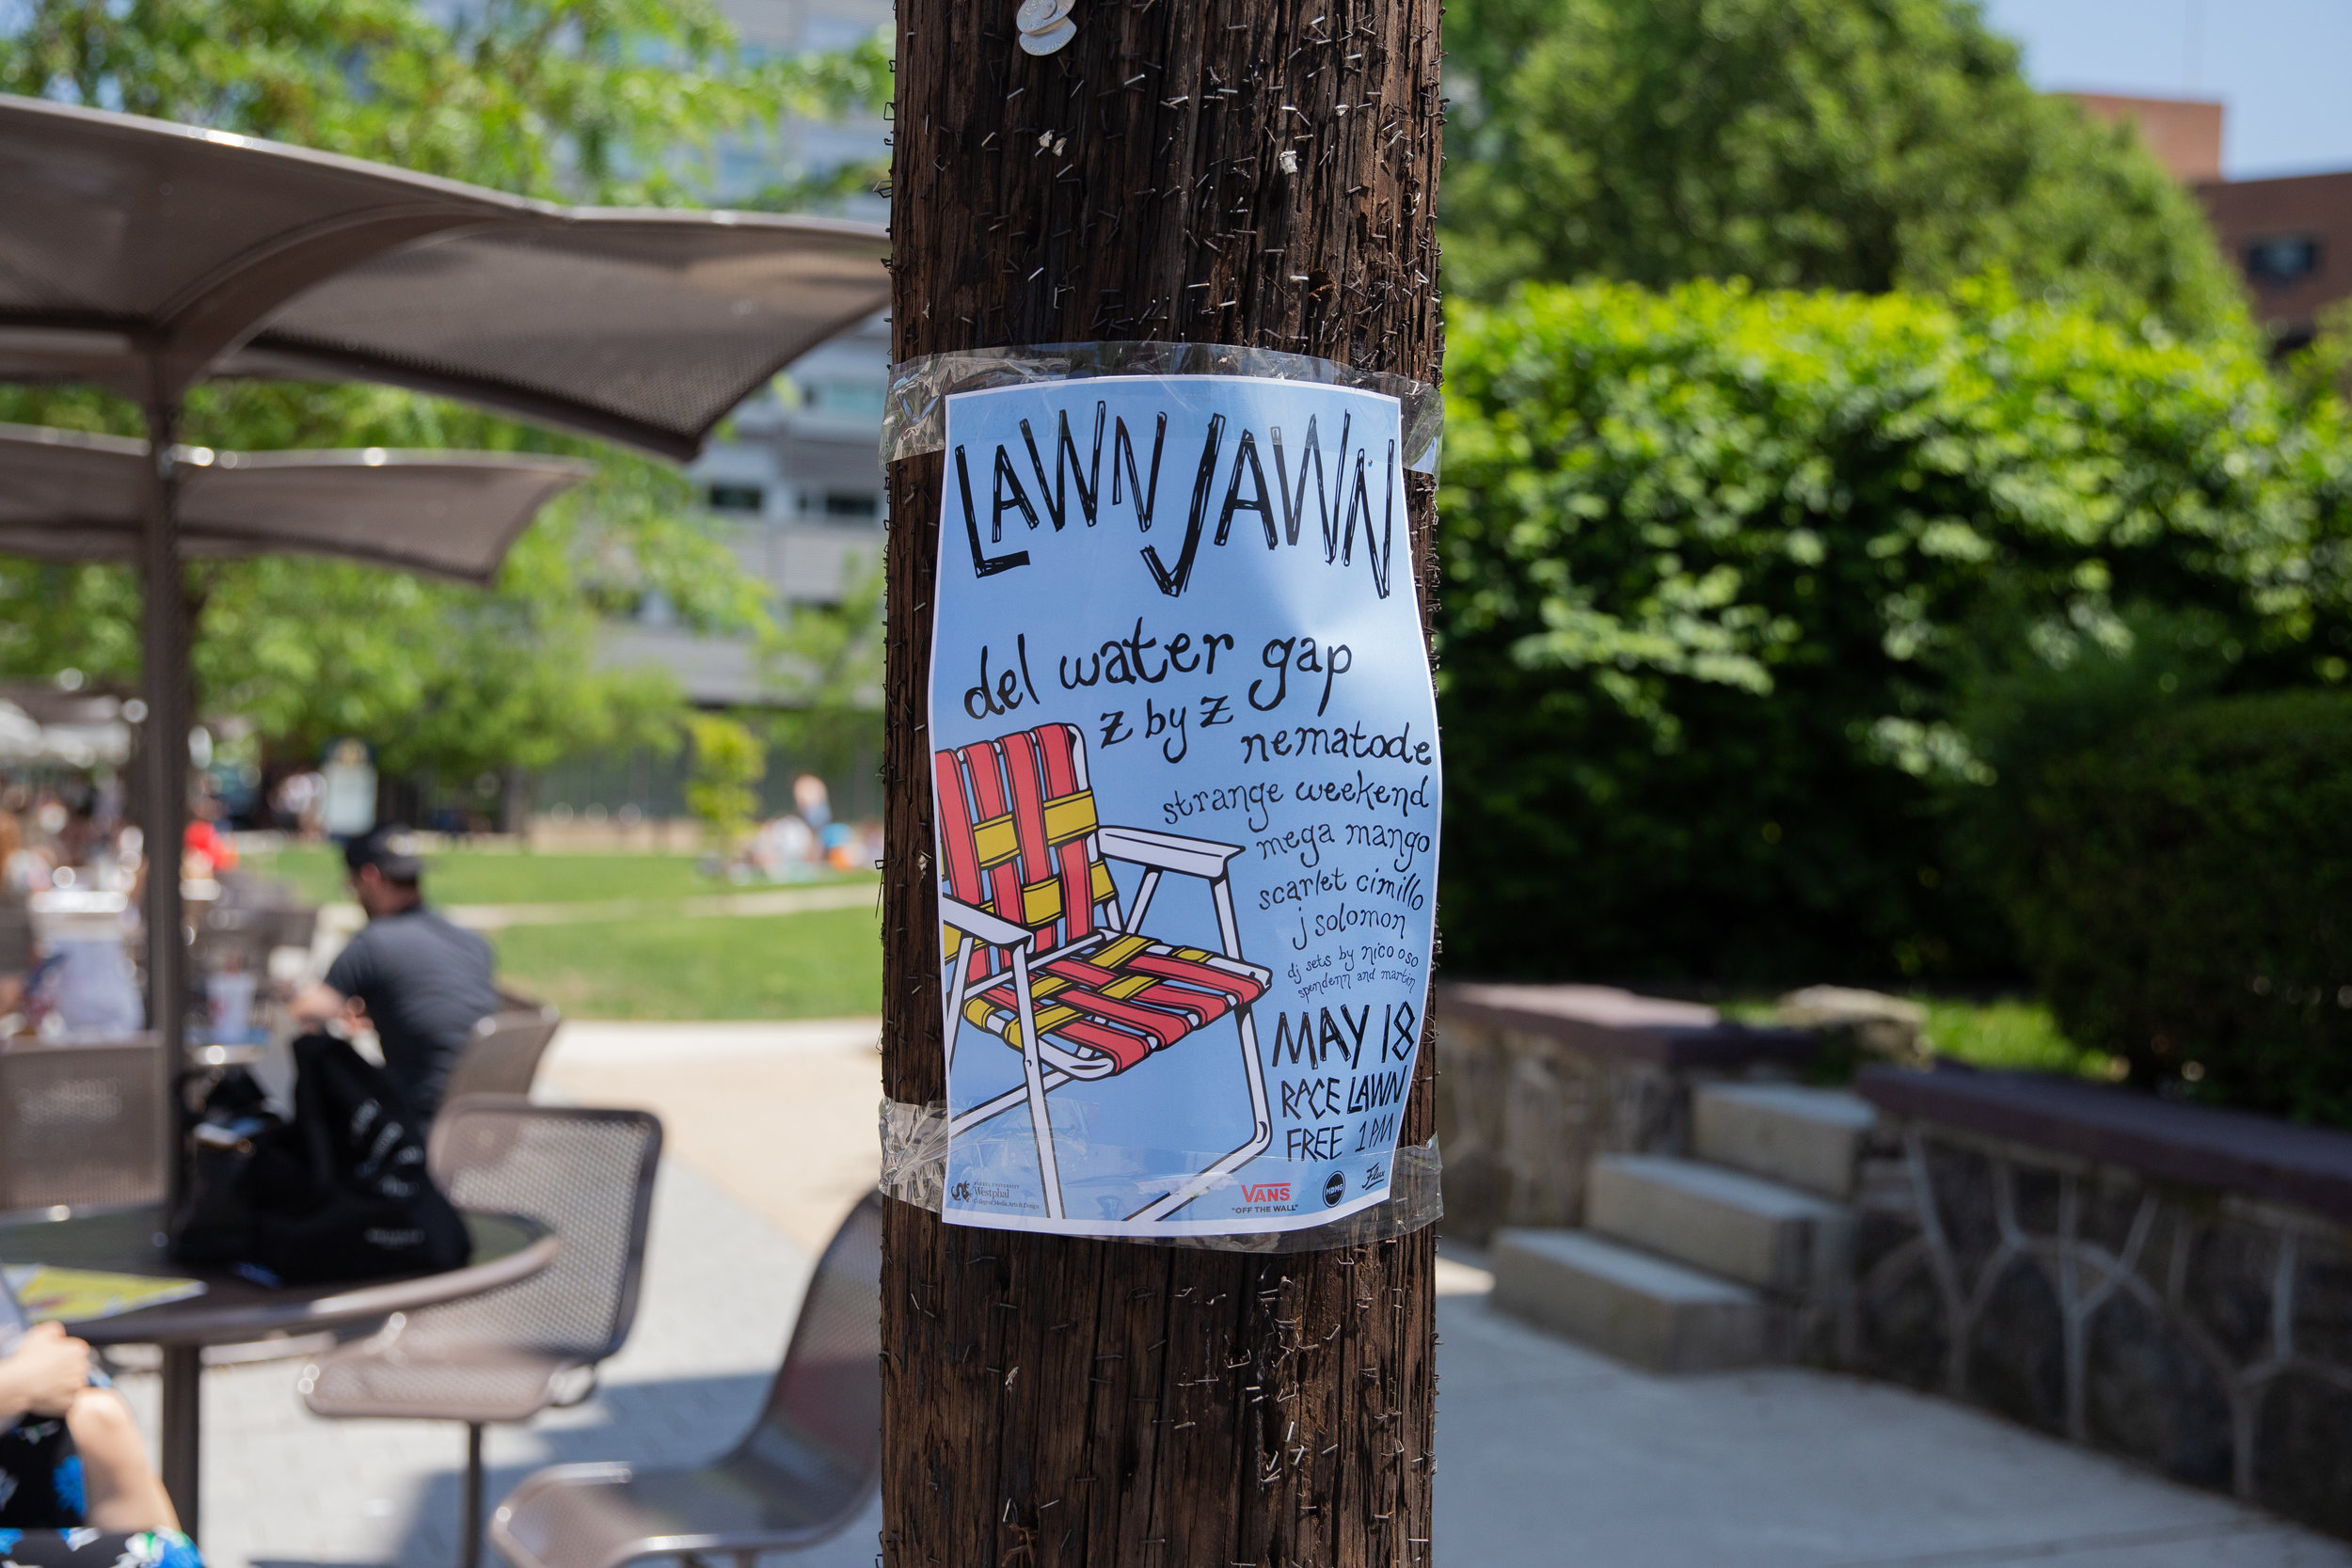 Poster hung up on festival site